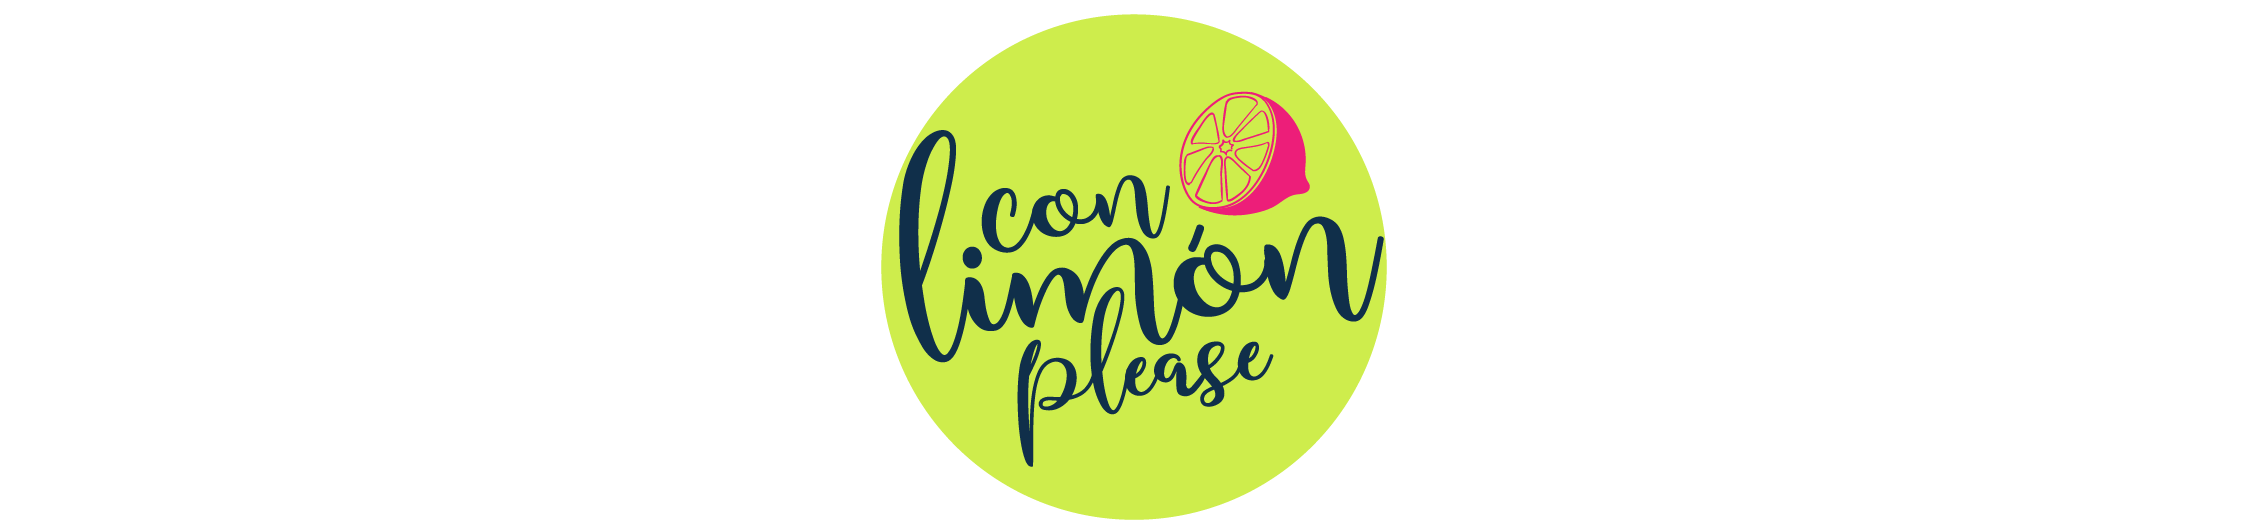 Con Limón, Please